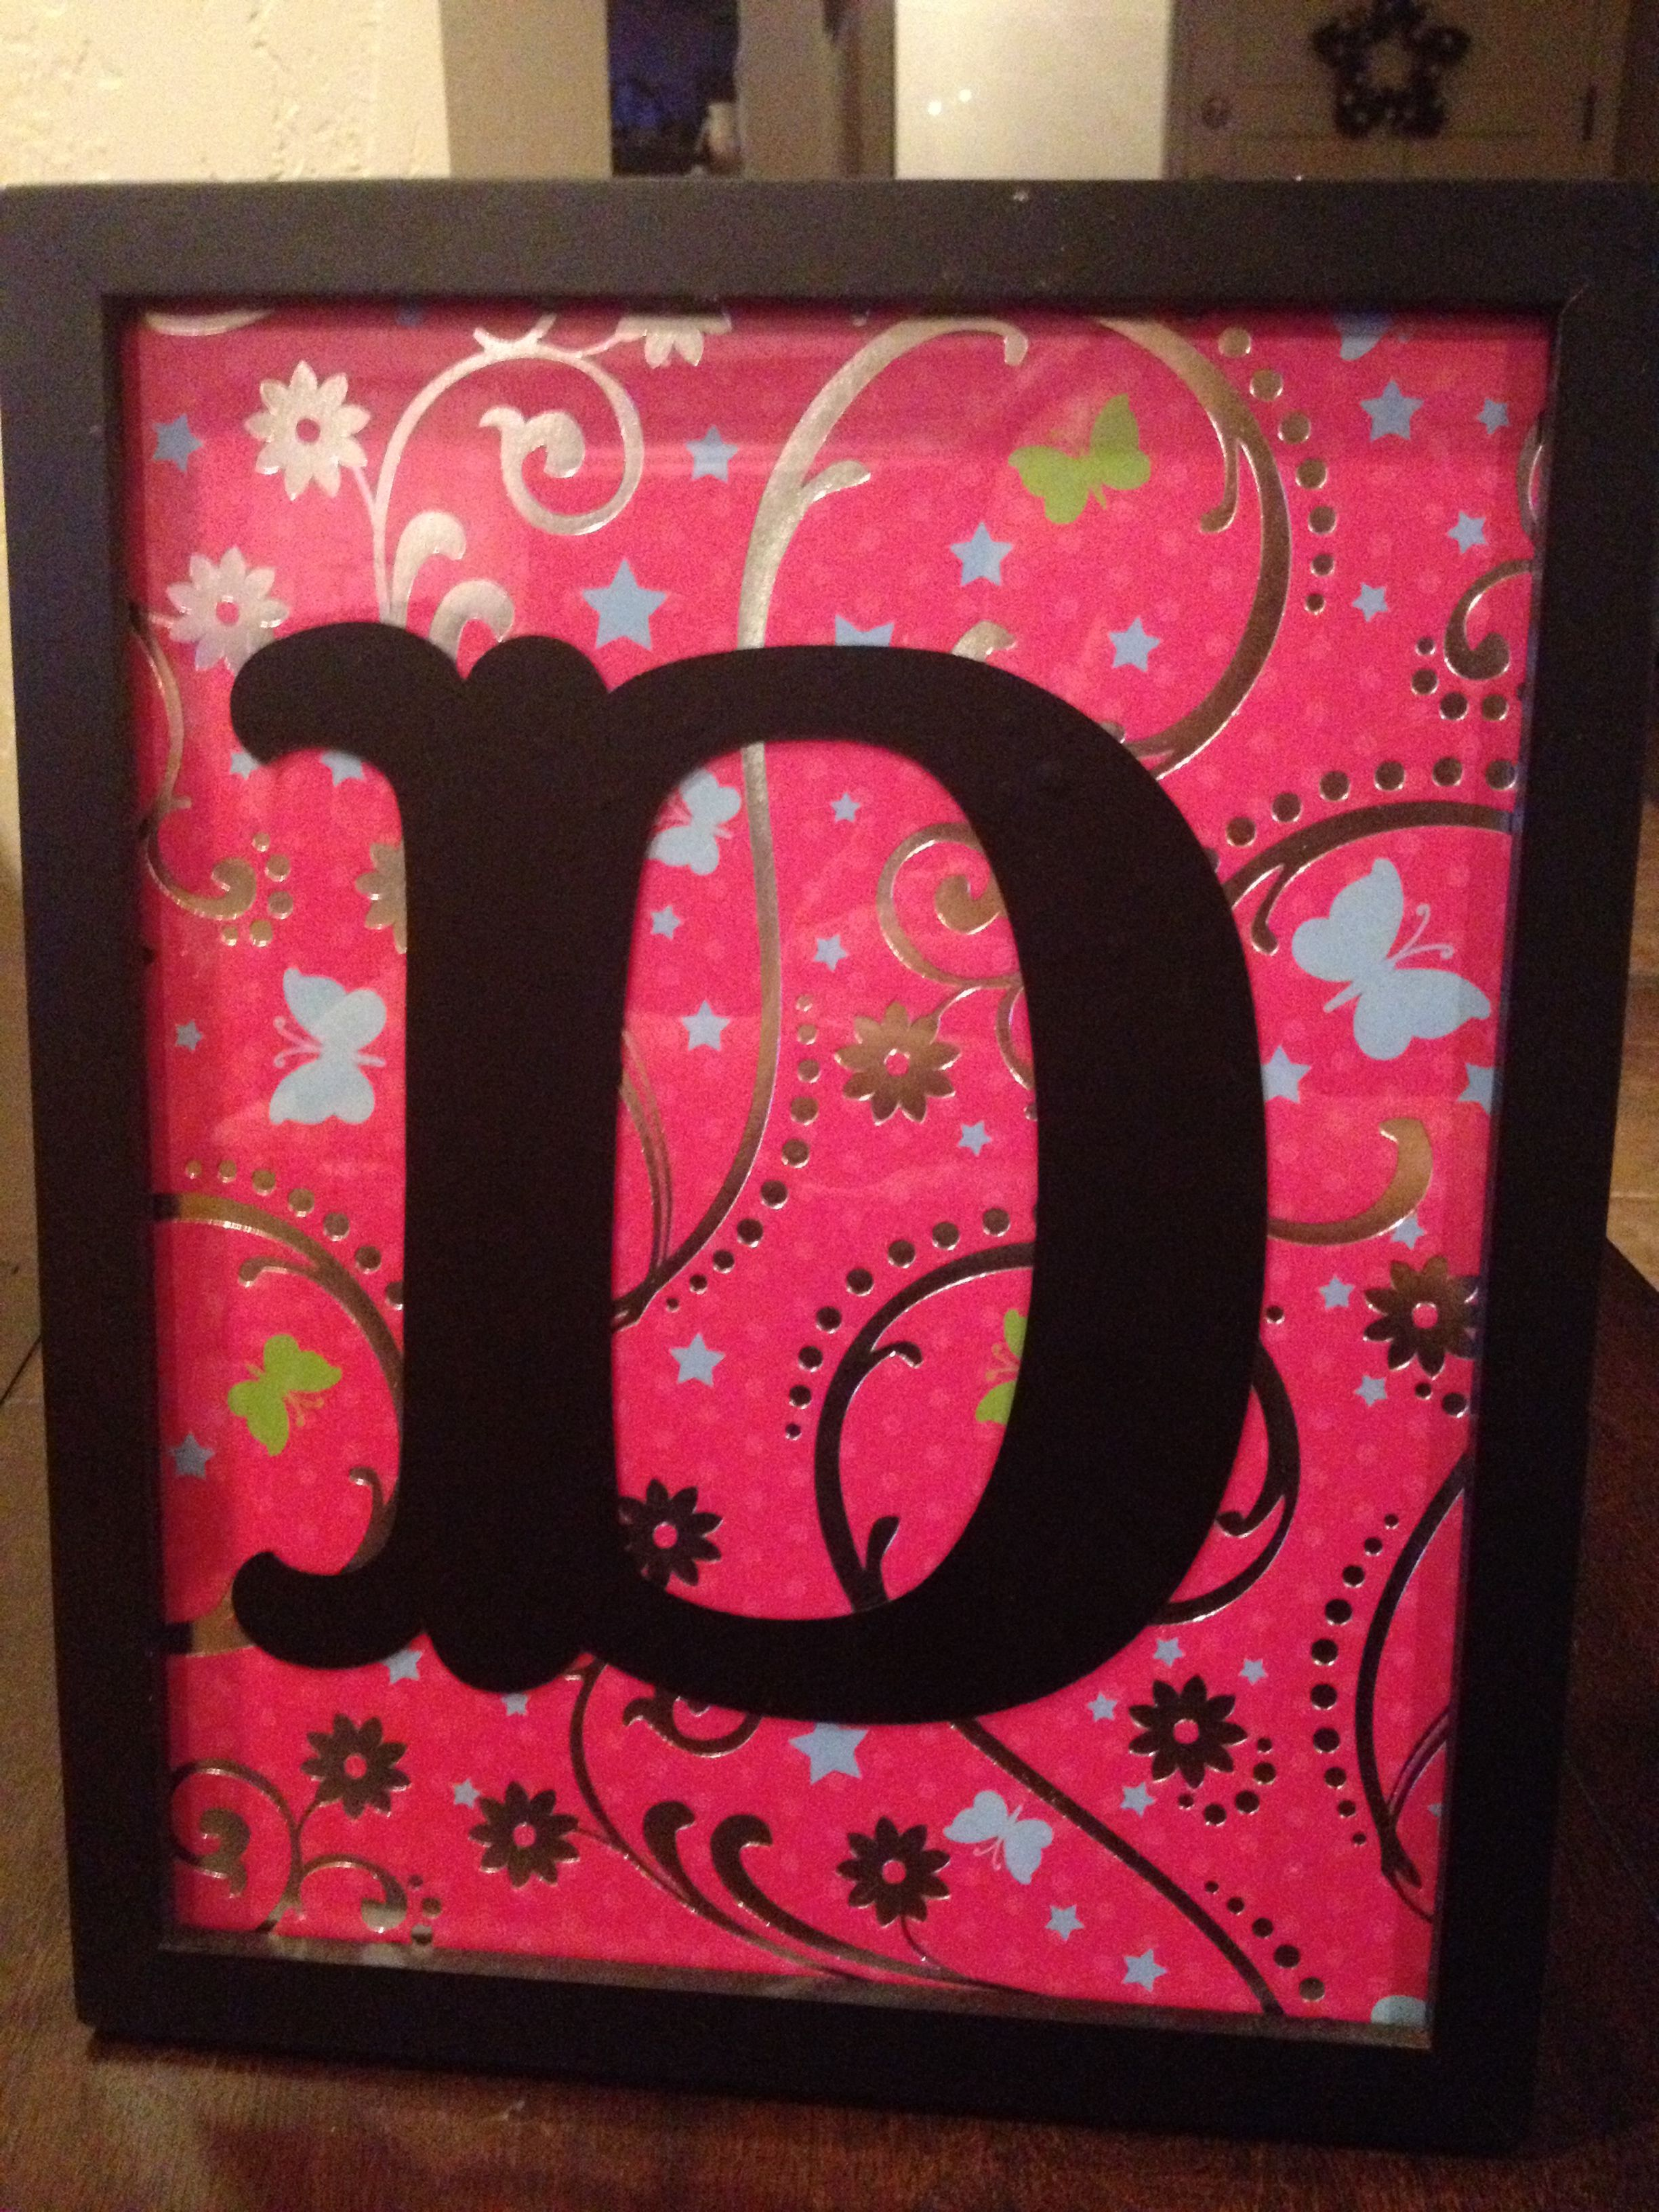 Initial frame 8x10 frame with a vinyl letter cut out by cricut initial frame 8x10 frame with a vinyl letter cut out by cricut spiritdancerdesigns Images